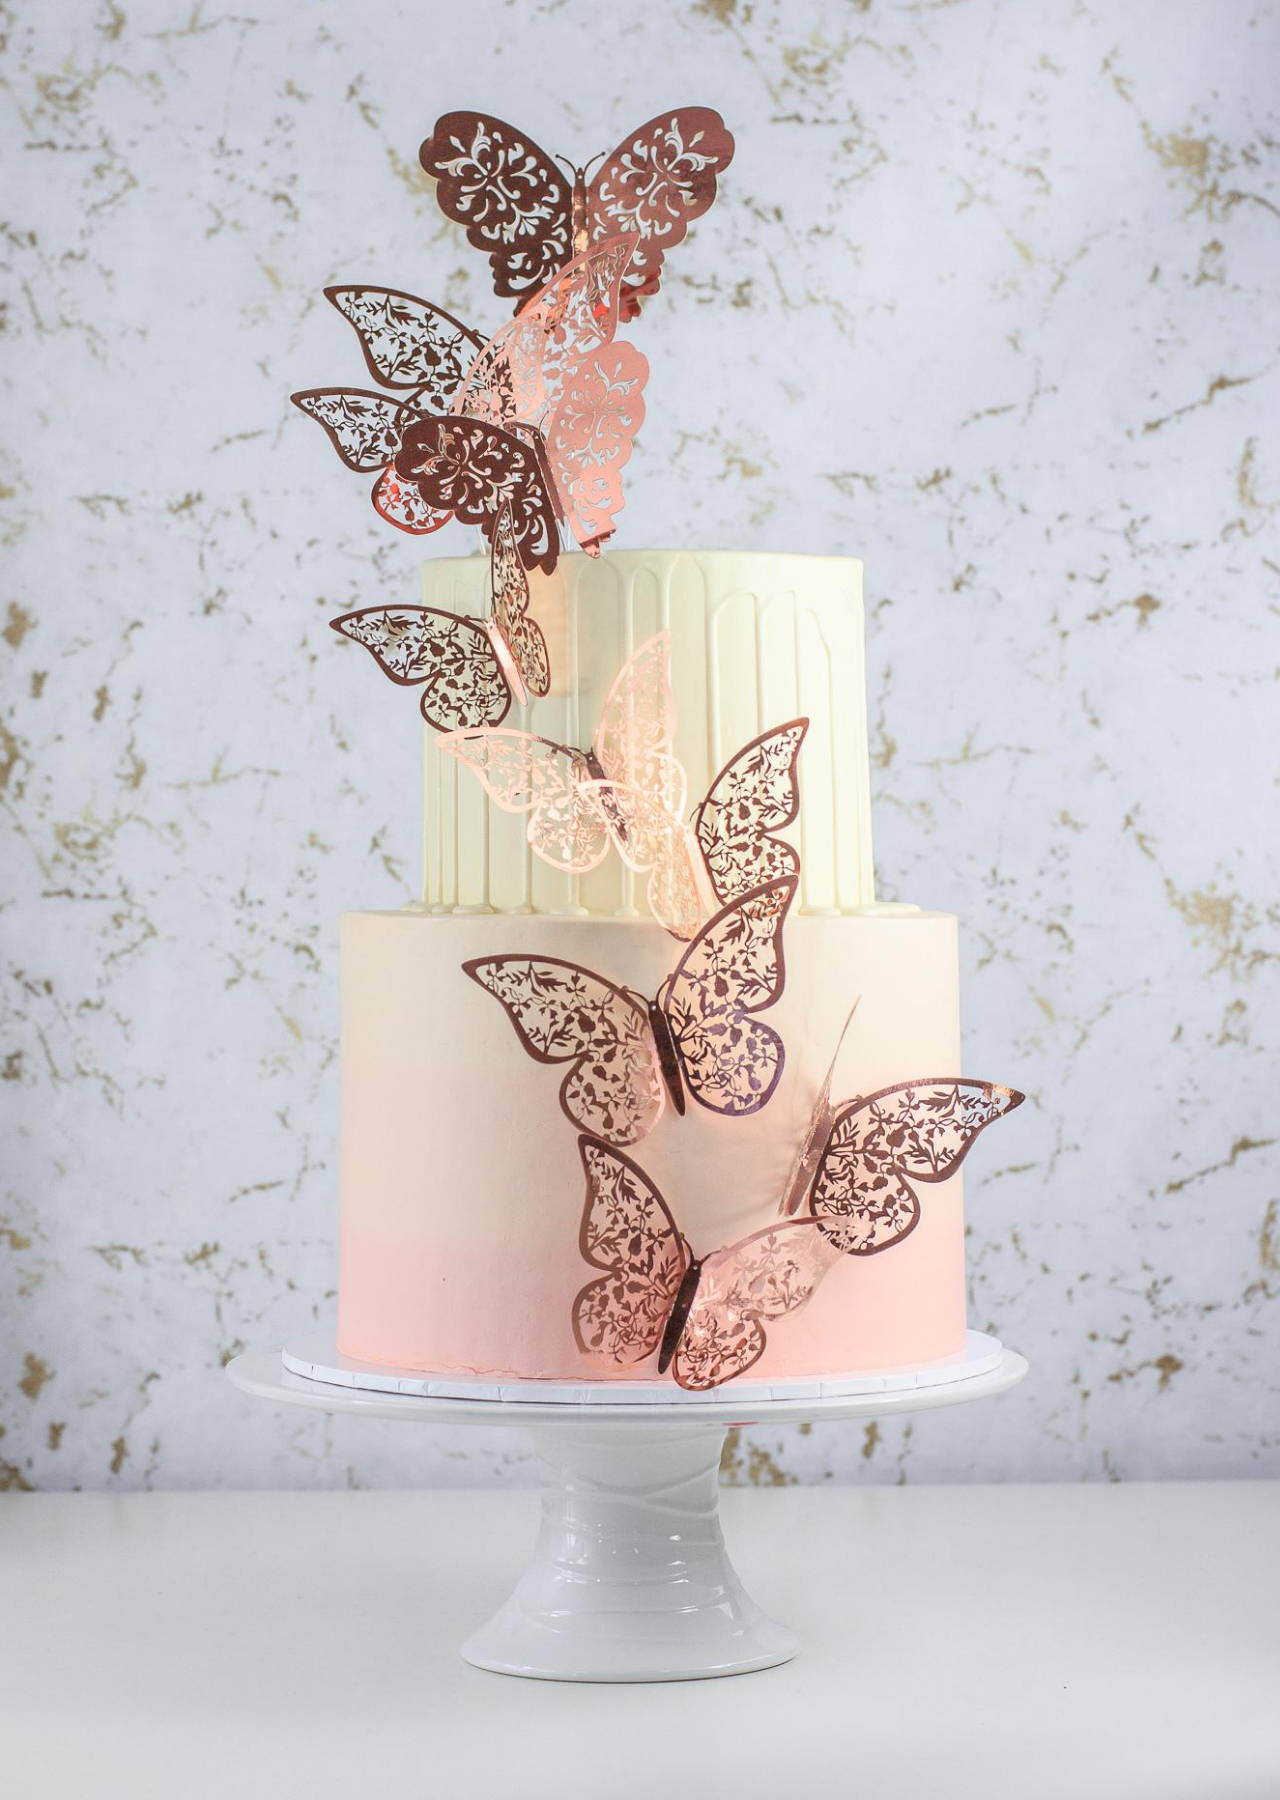 Two Tier Pastel Pink Ombre Cake with Rose Gold Butterflies